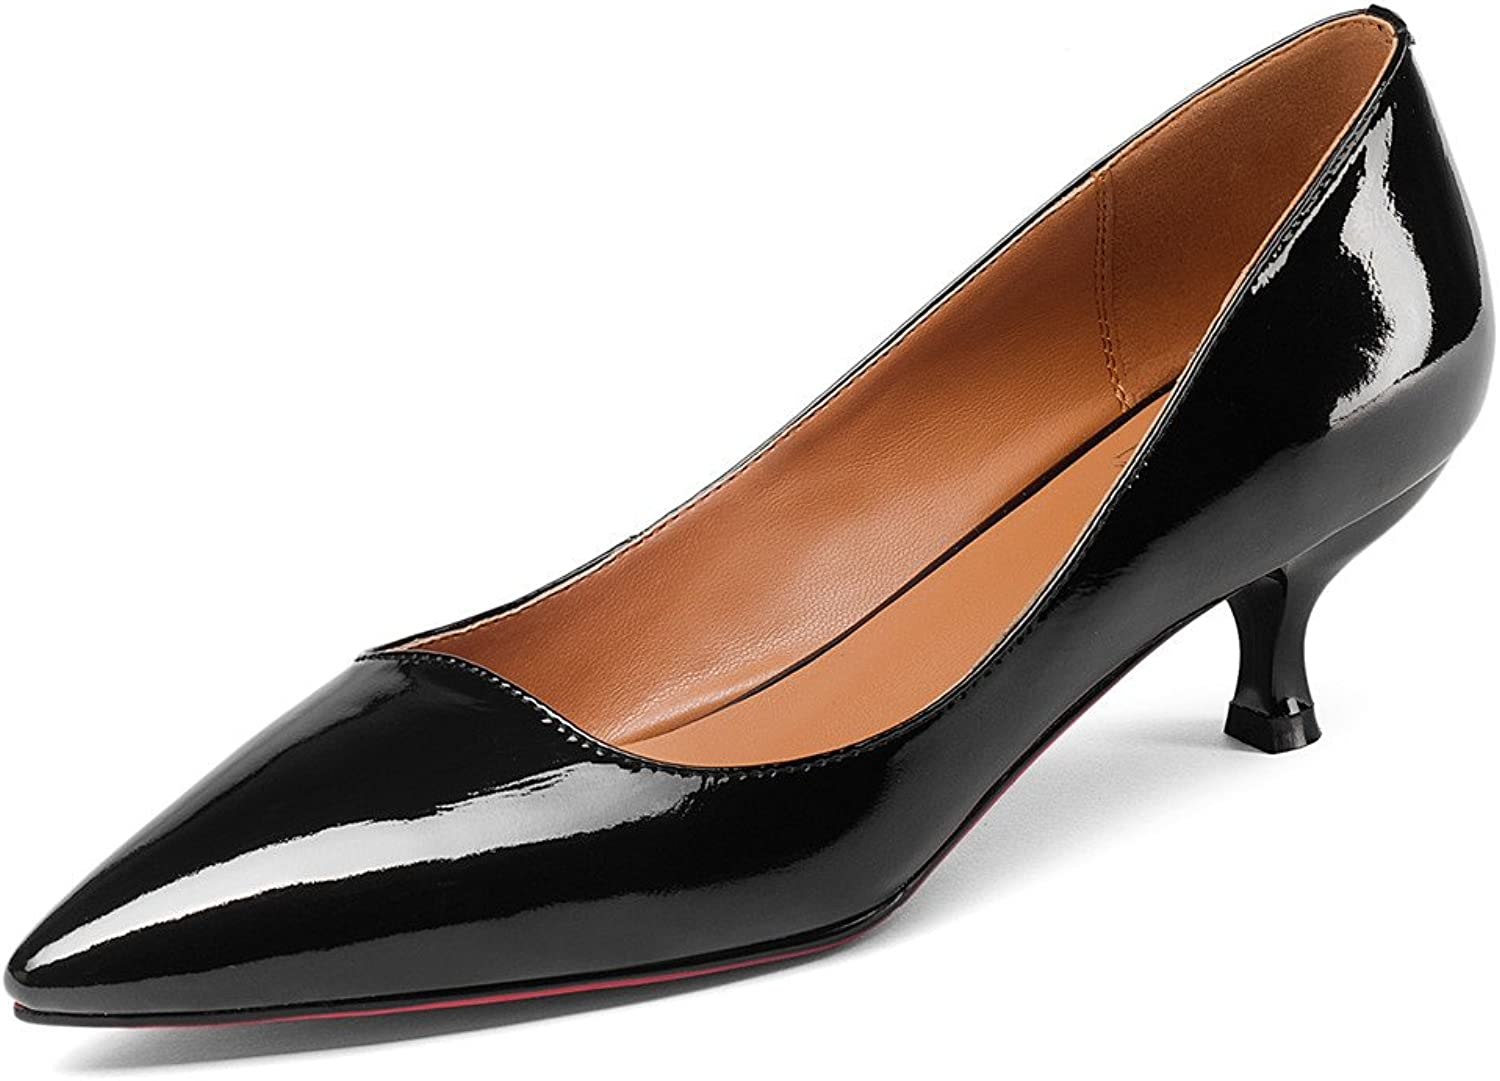 Nine Seven Patent Leather Women's Pointed Toe Stiletto Heel Cute Handmade Party Retro Pump shoes